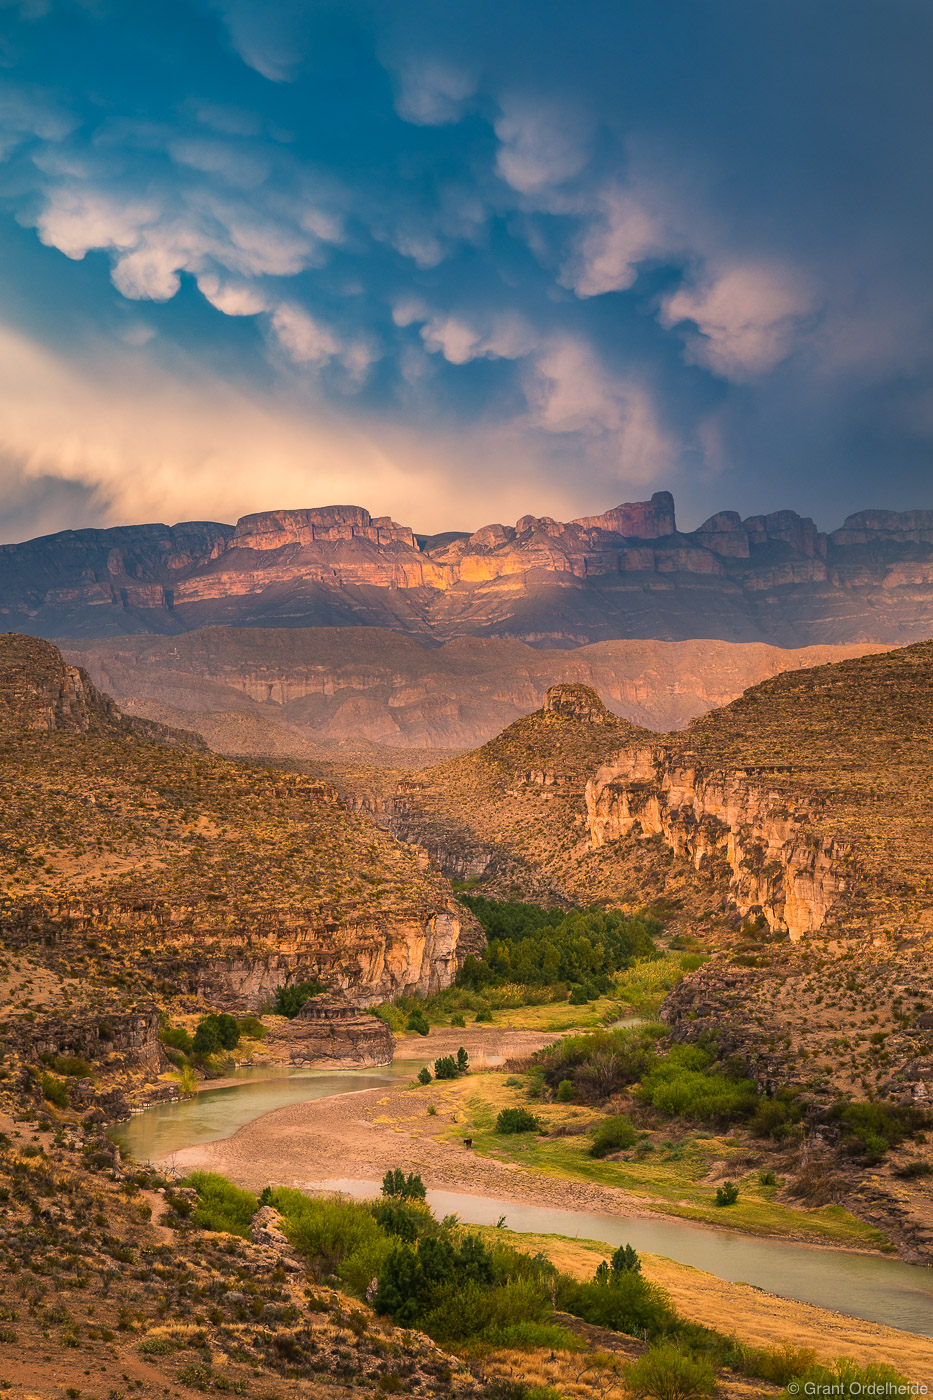 Storm light over the Rio Grande river and Sierra del Carmen Mountains viewed from Big Bend National Park.